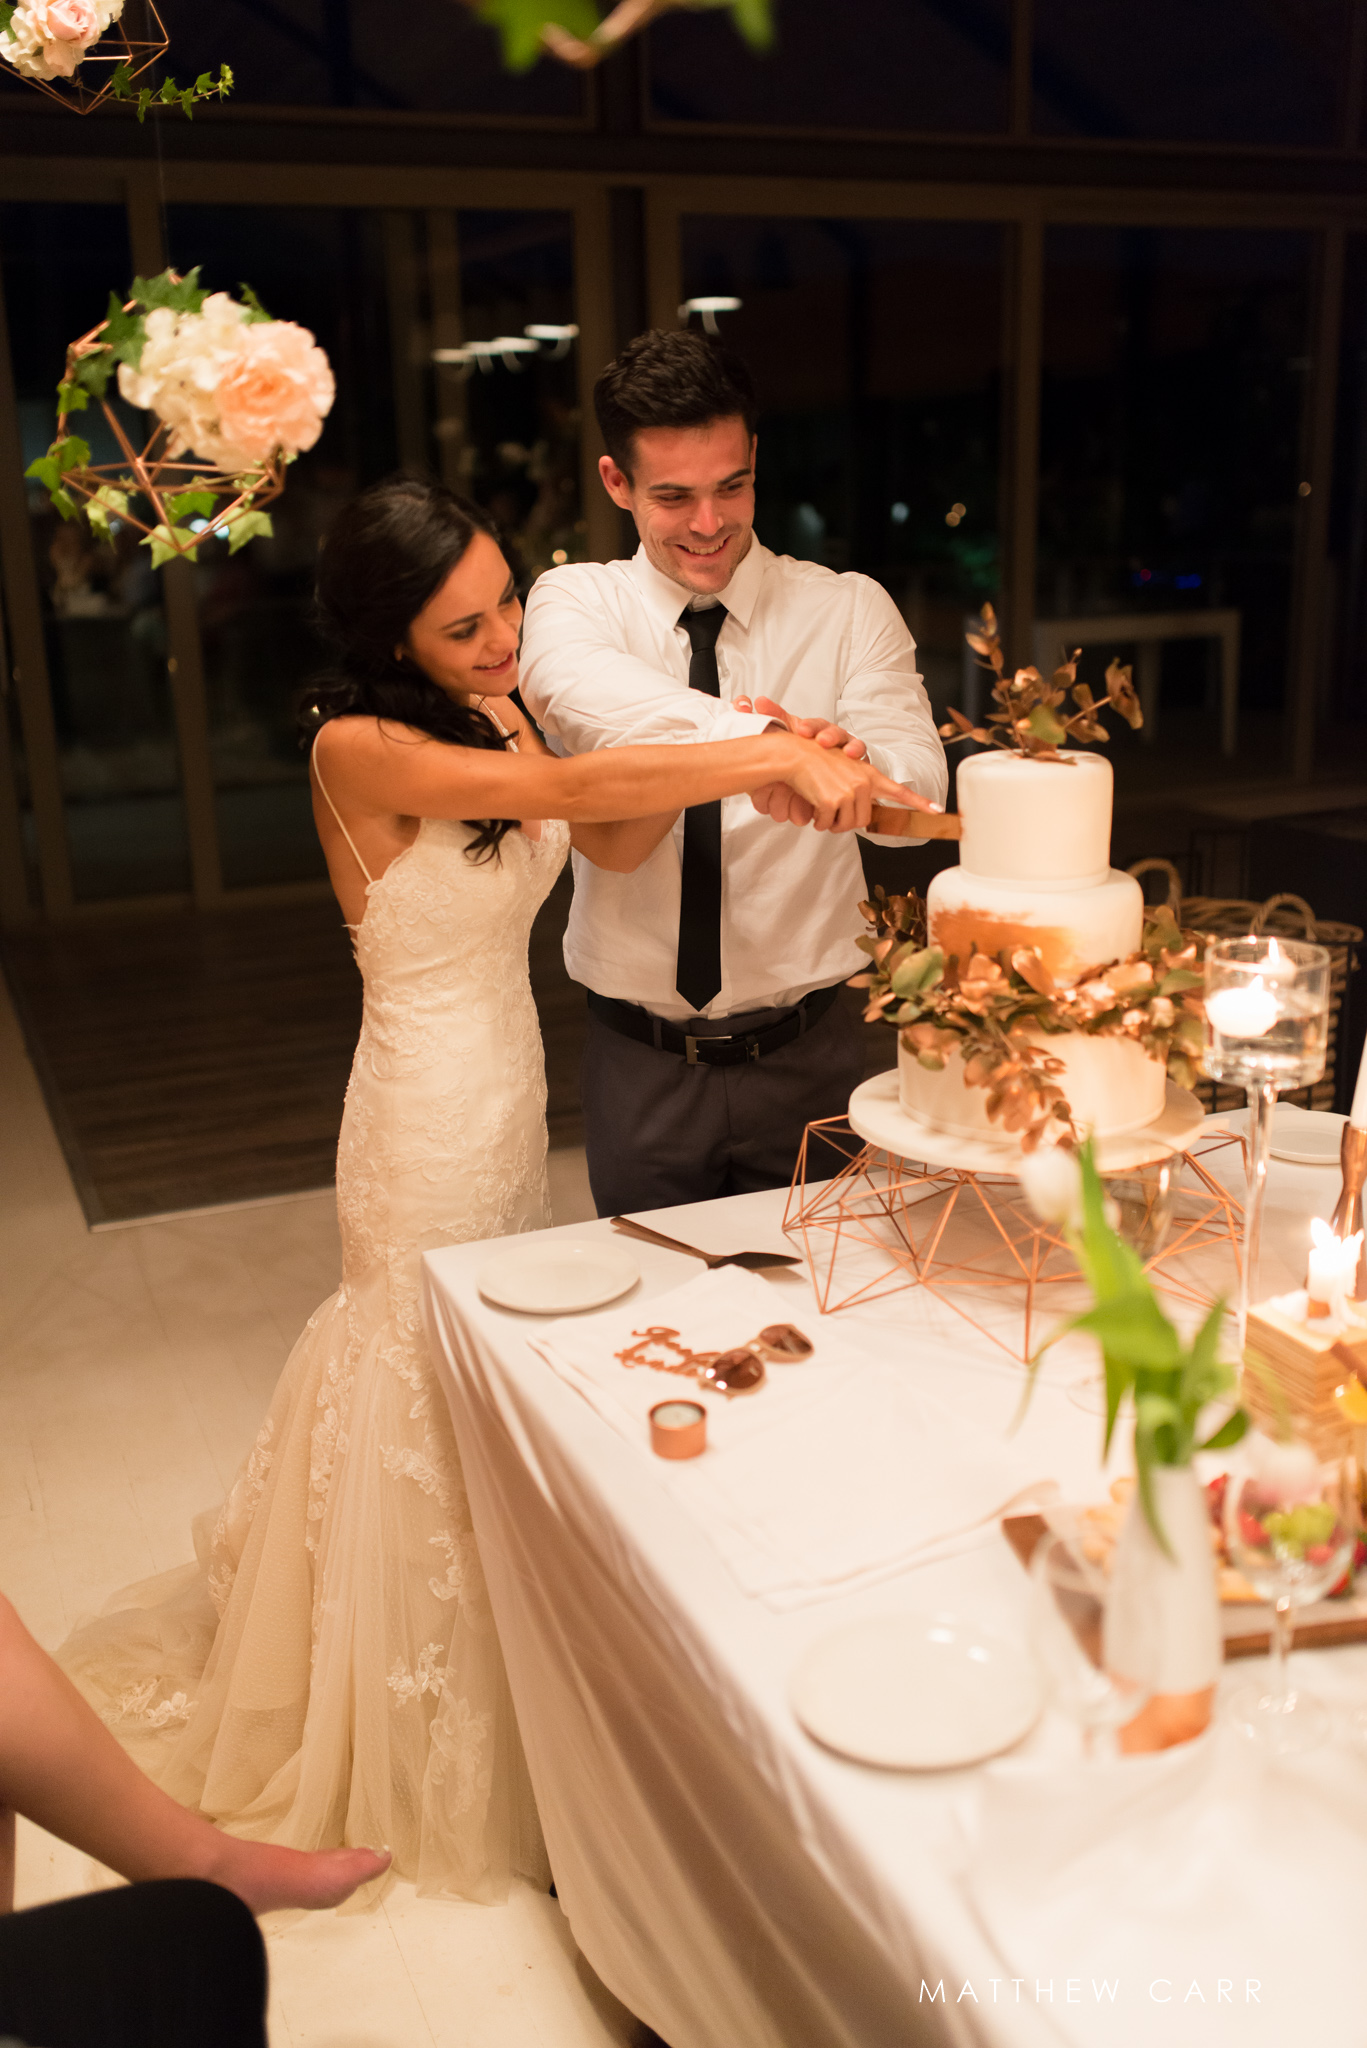 reception - low res (for viewing, social meida) (42 of 147).JPG